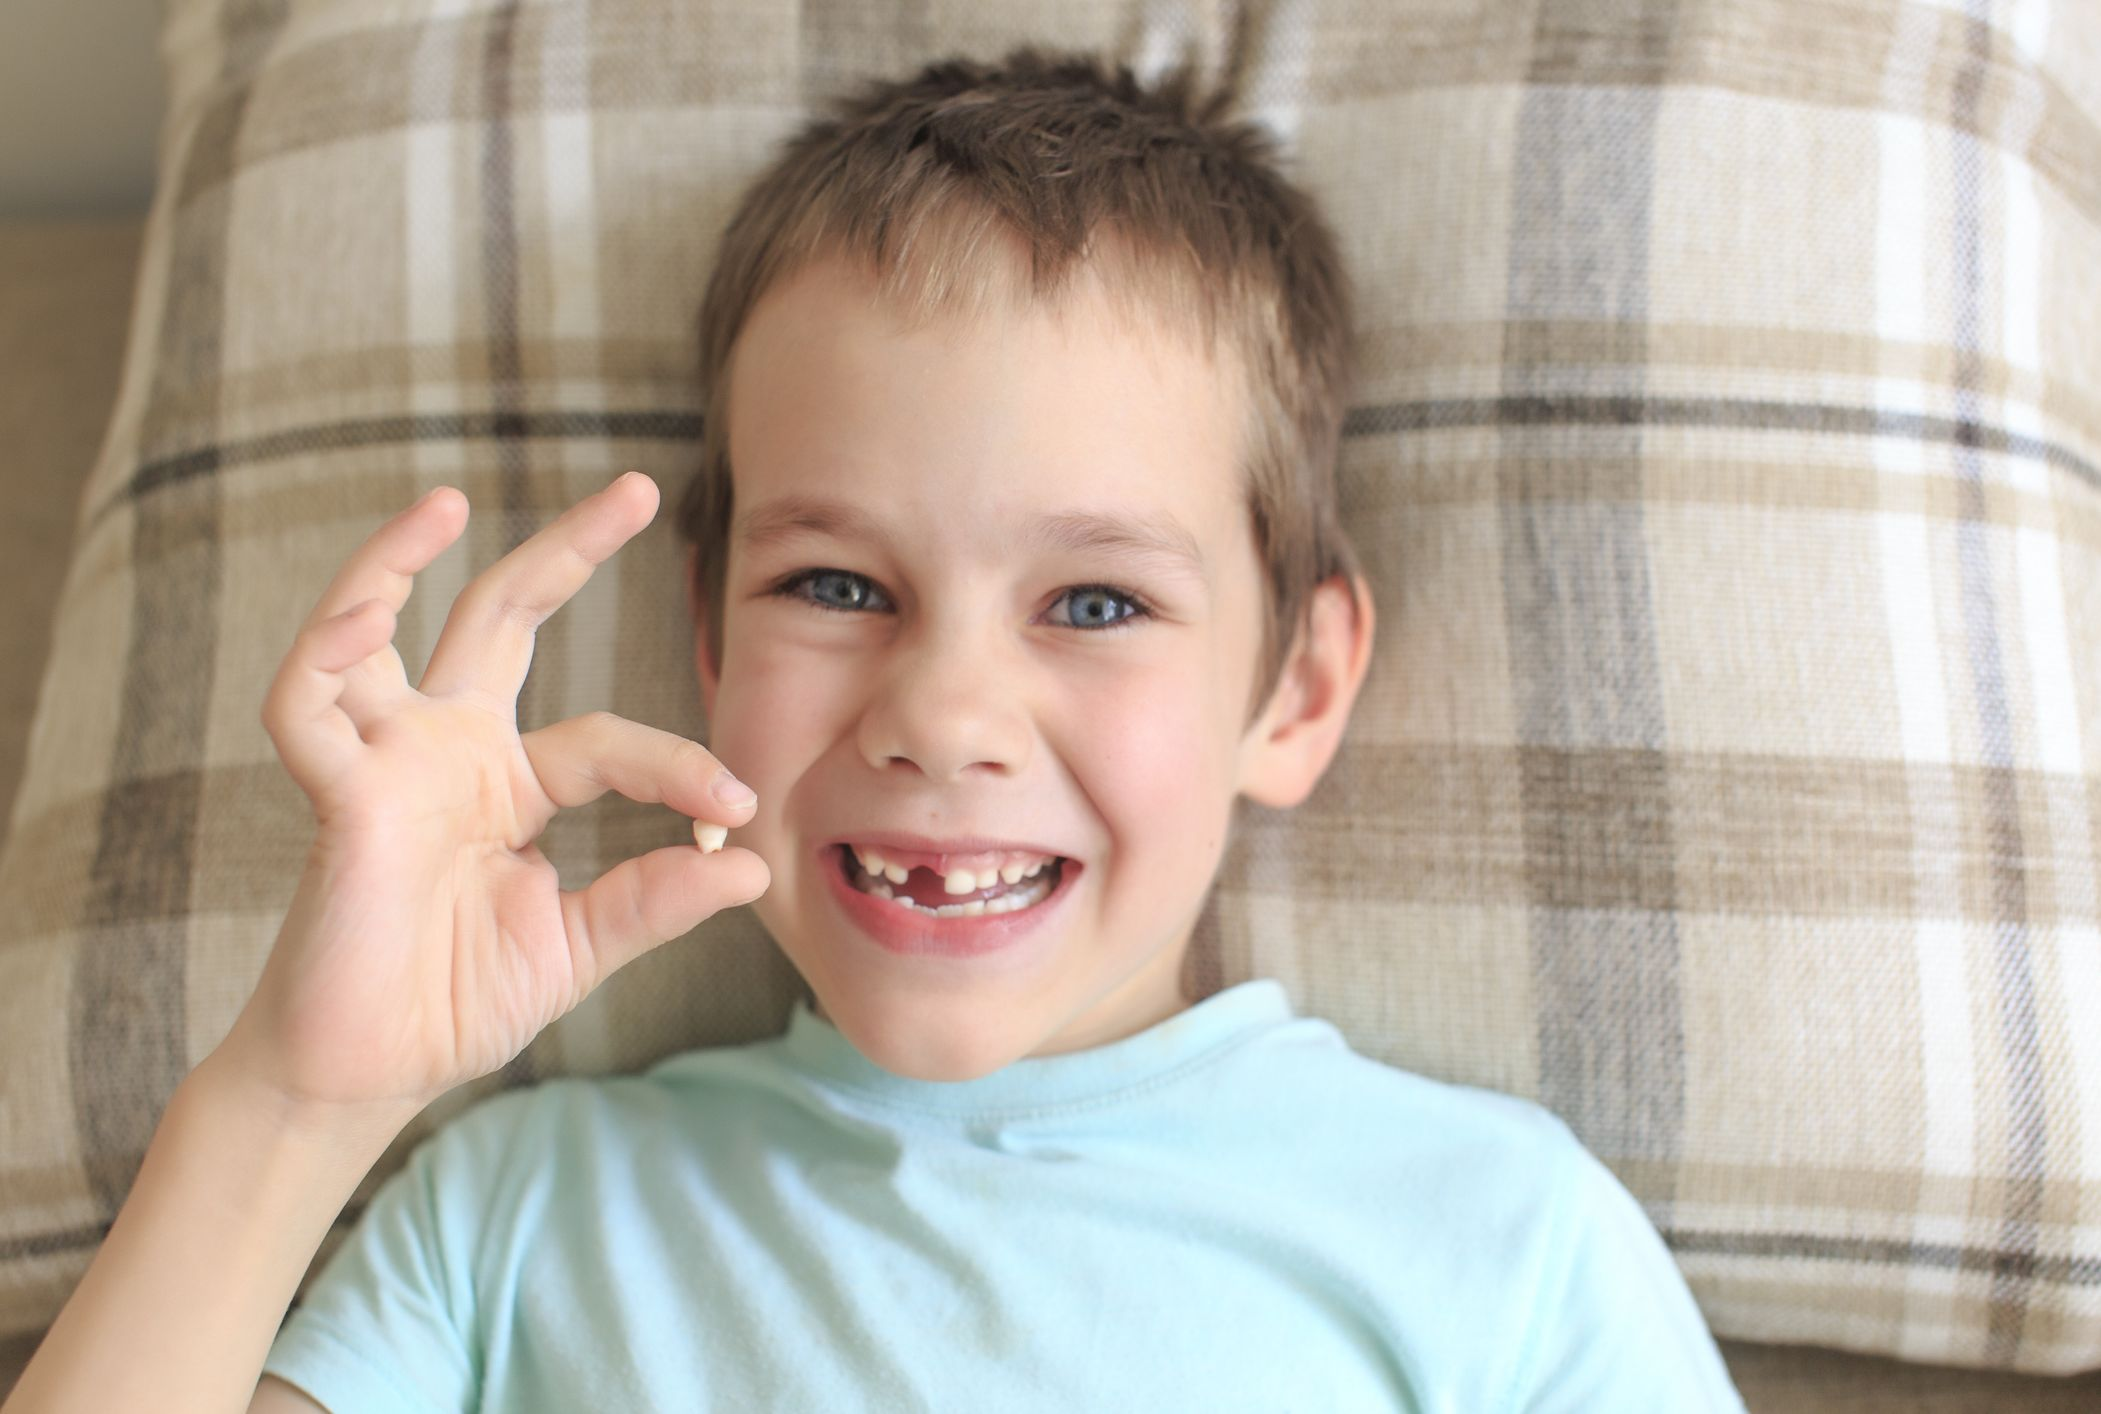 13 Facts About the Tooth Fairy | Mental Floss